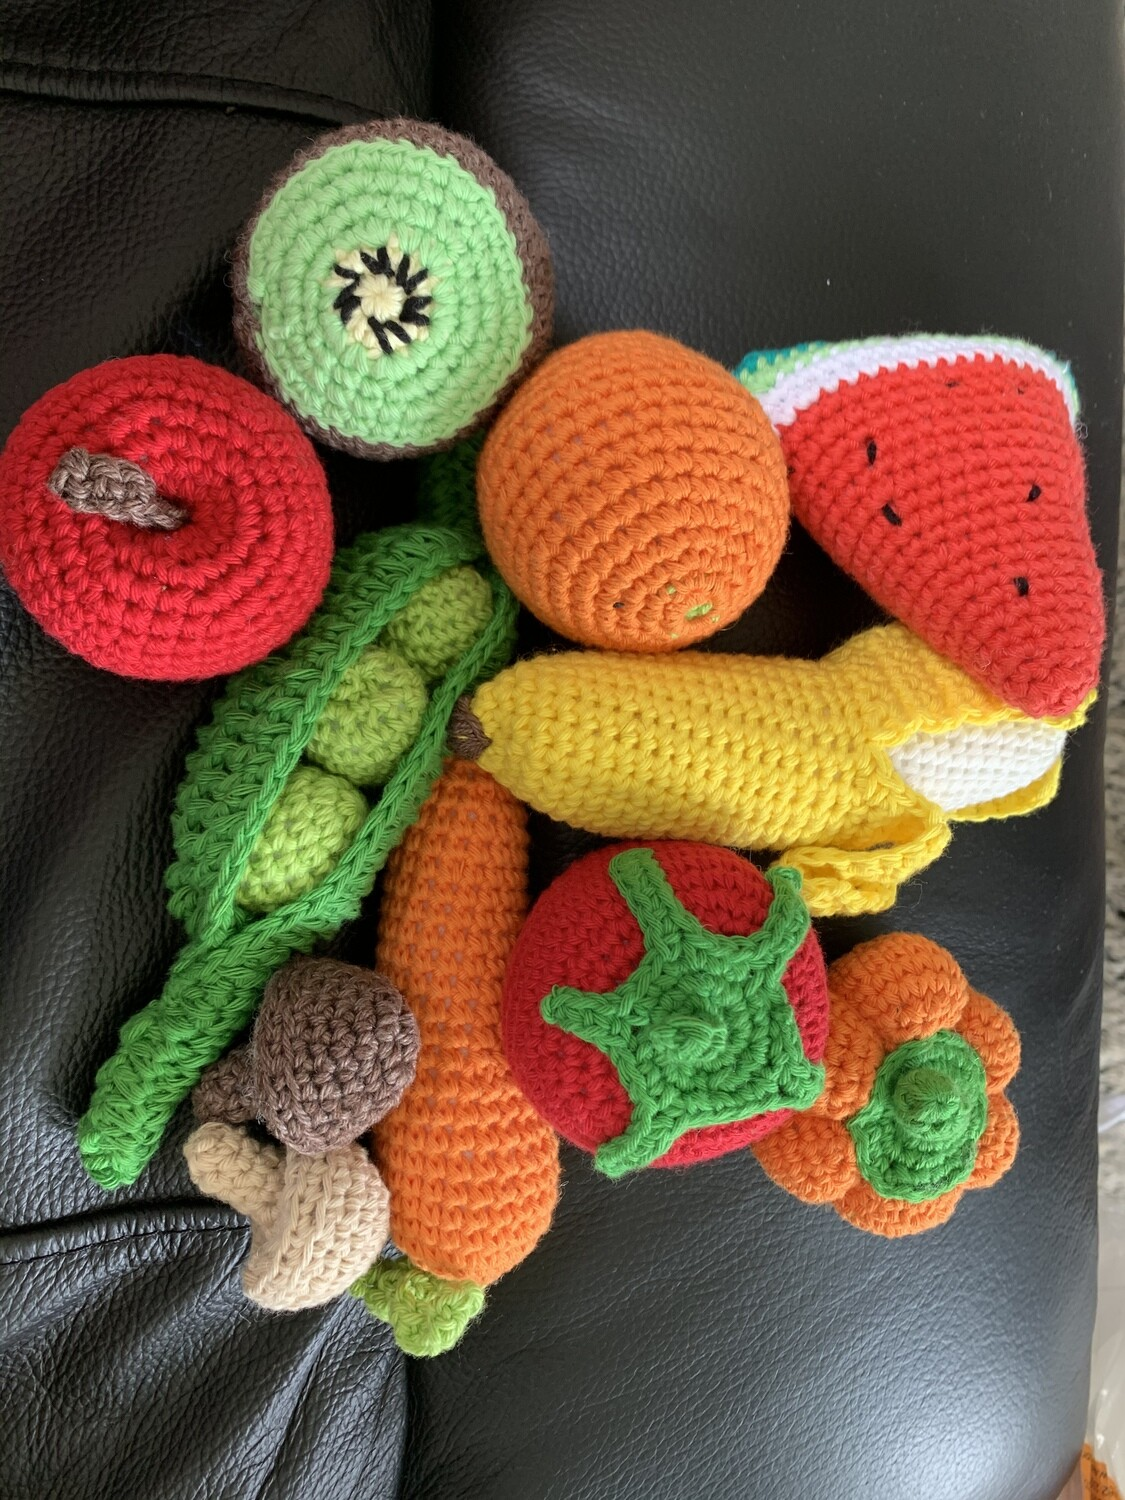 Fruit and Vegetables 10 pieces + postage